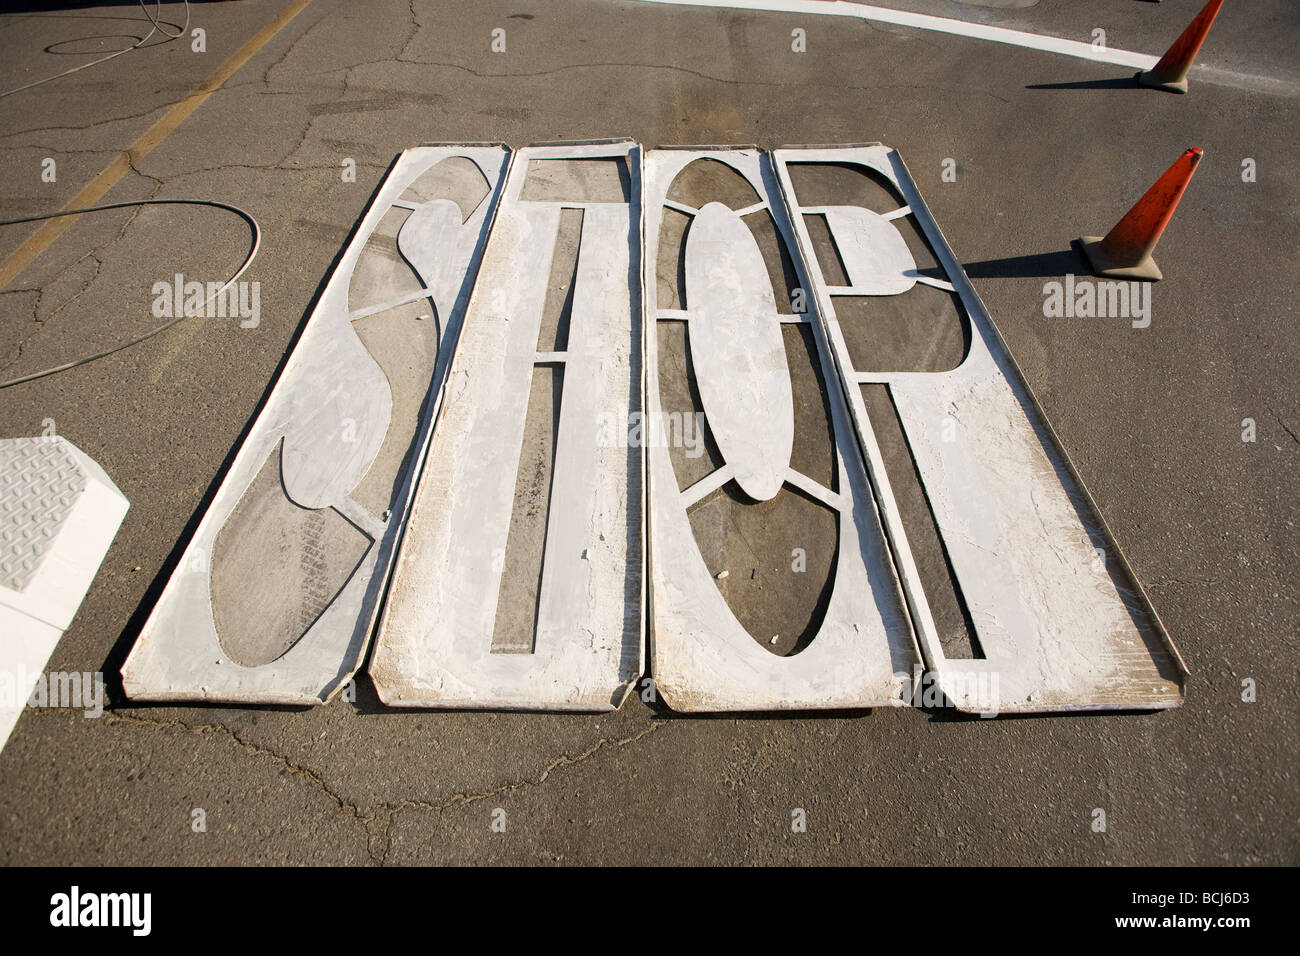 Wood stencils for painting STOP on pavement laying on asphalt street with orange traffic cones Indio California - Stock Image